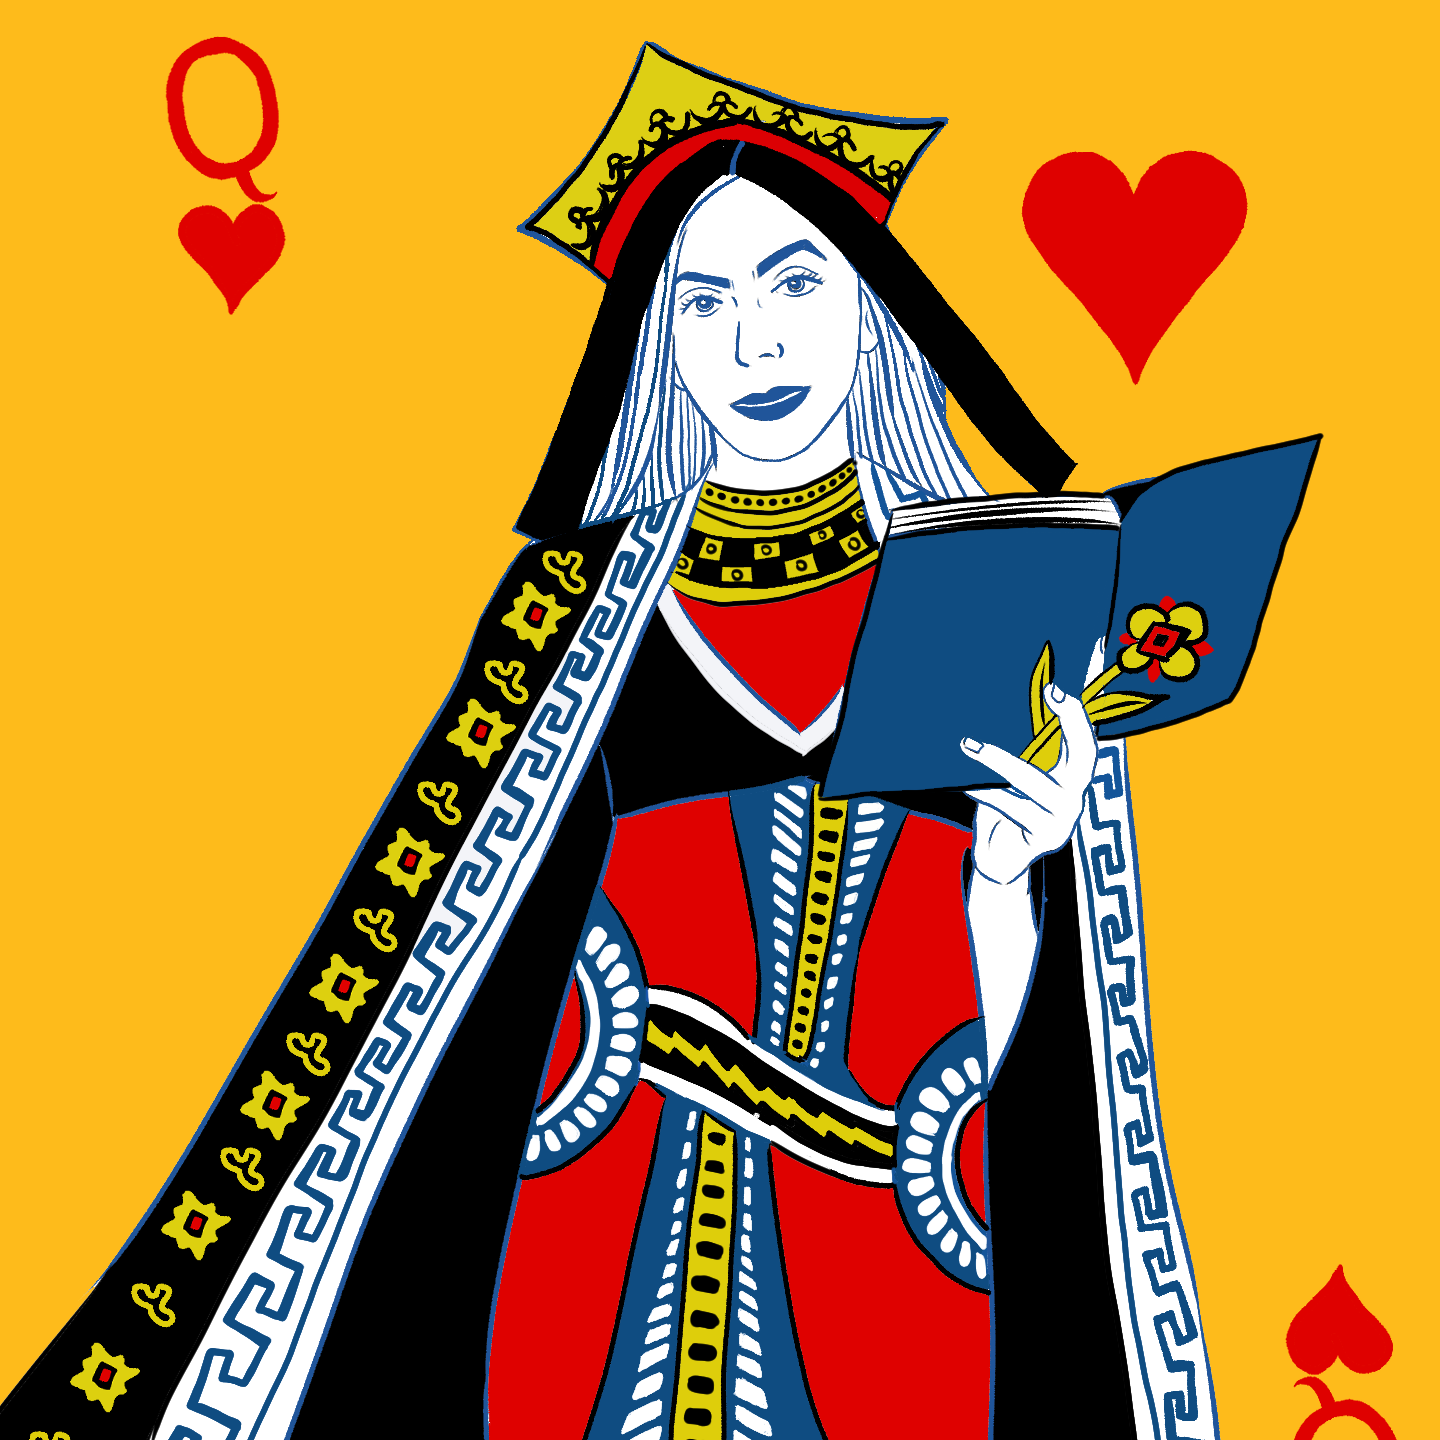 Episode 38 with MARIA KONNIKOVA: The Biggest Bluff, Psychologist Turned Poker Player